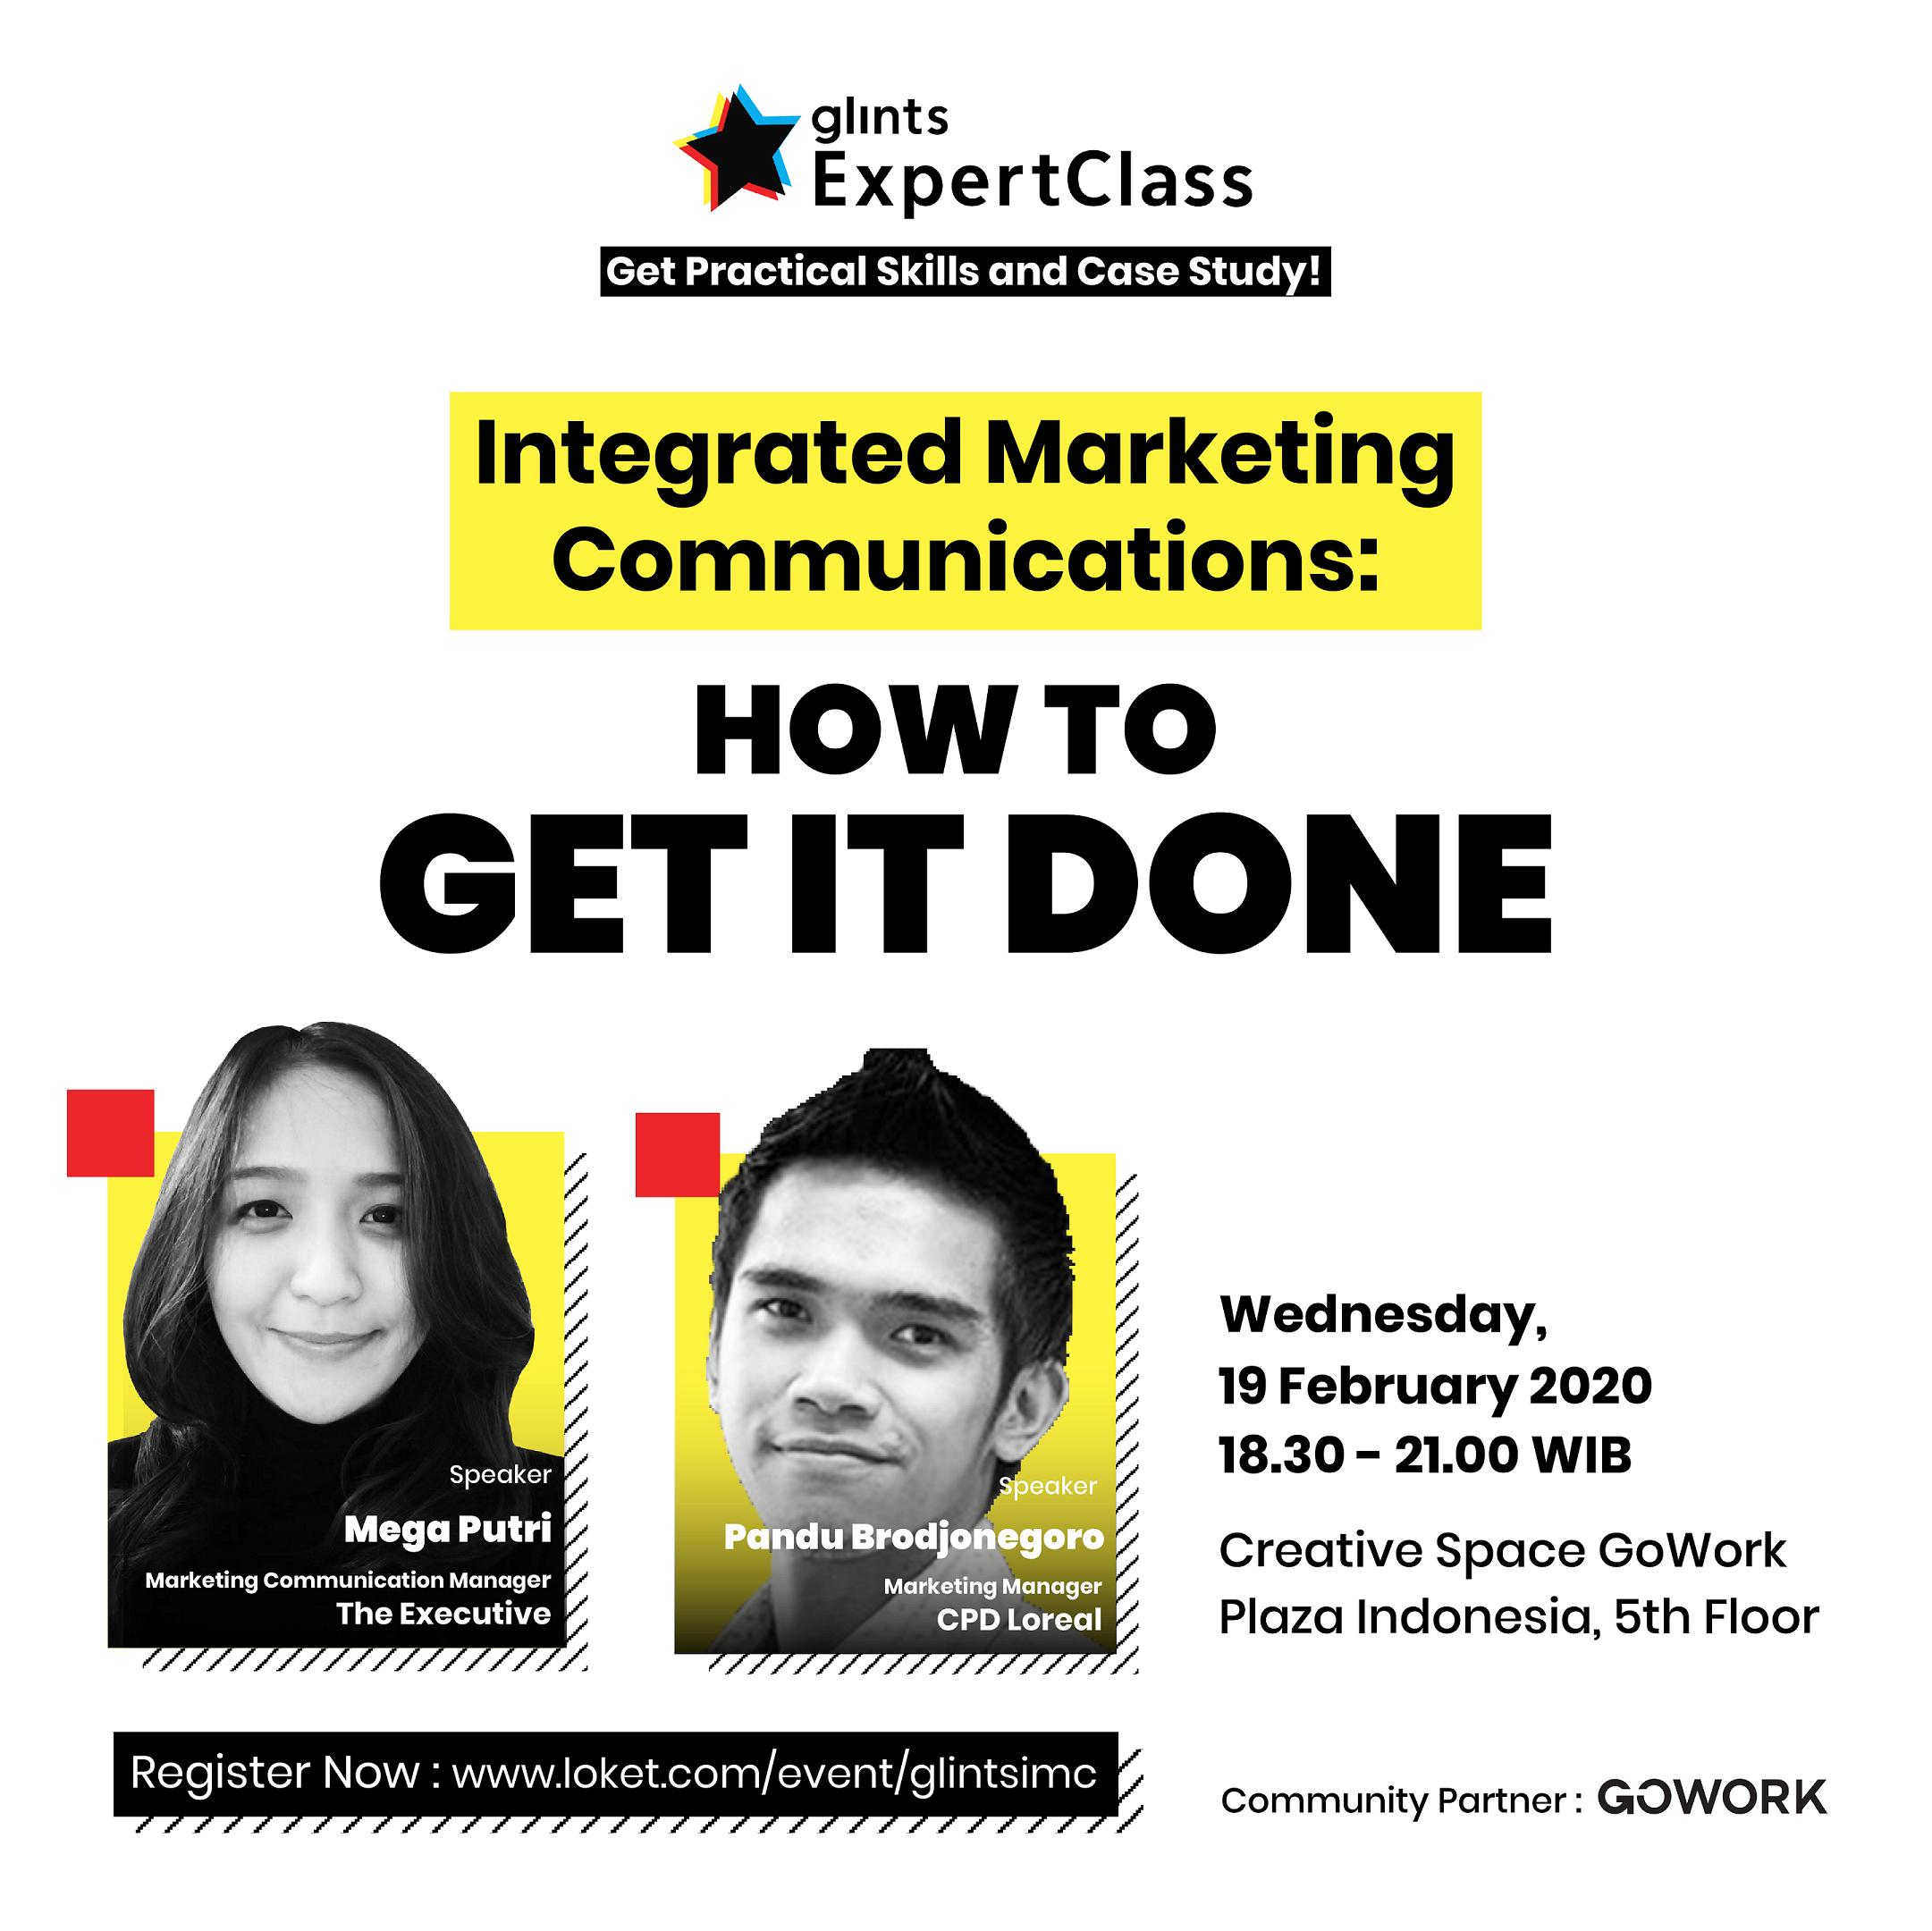 Glints Expert Class - Integrated Marketing Communications: How to Get It Done